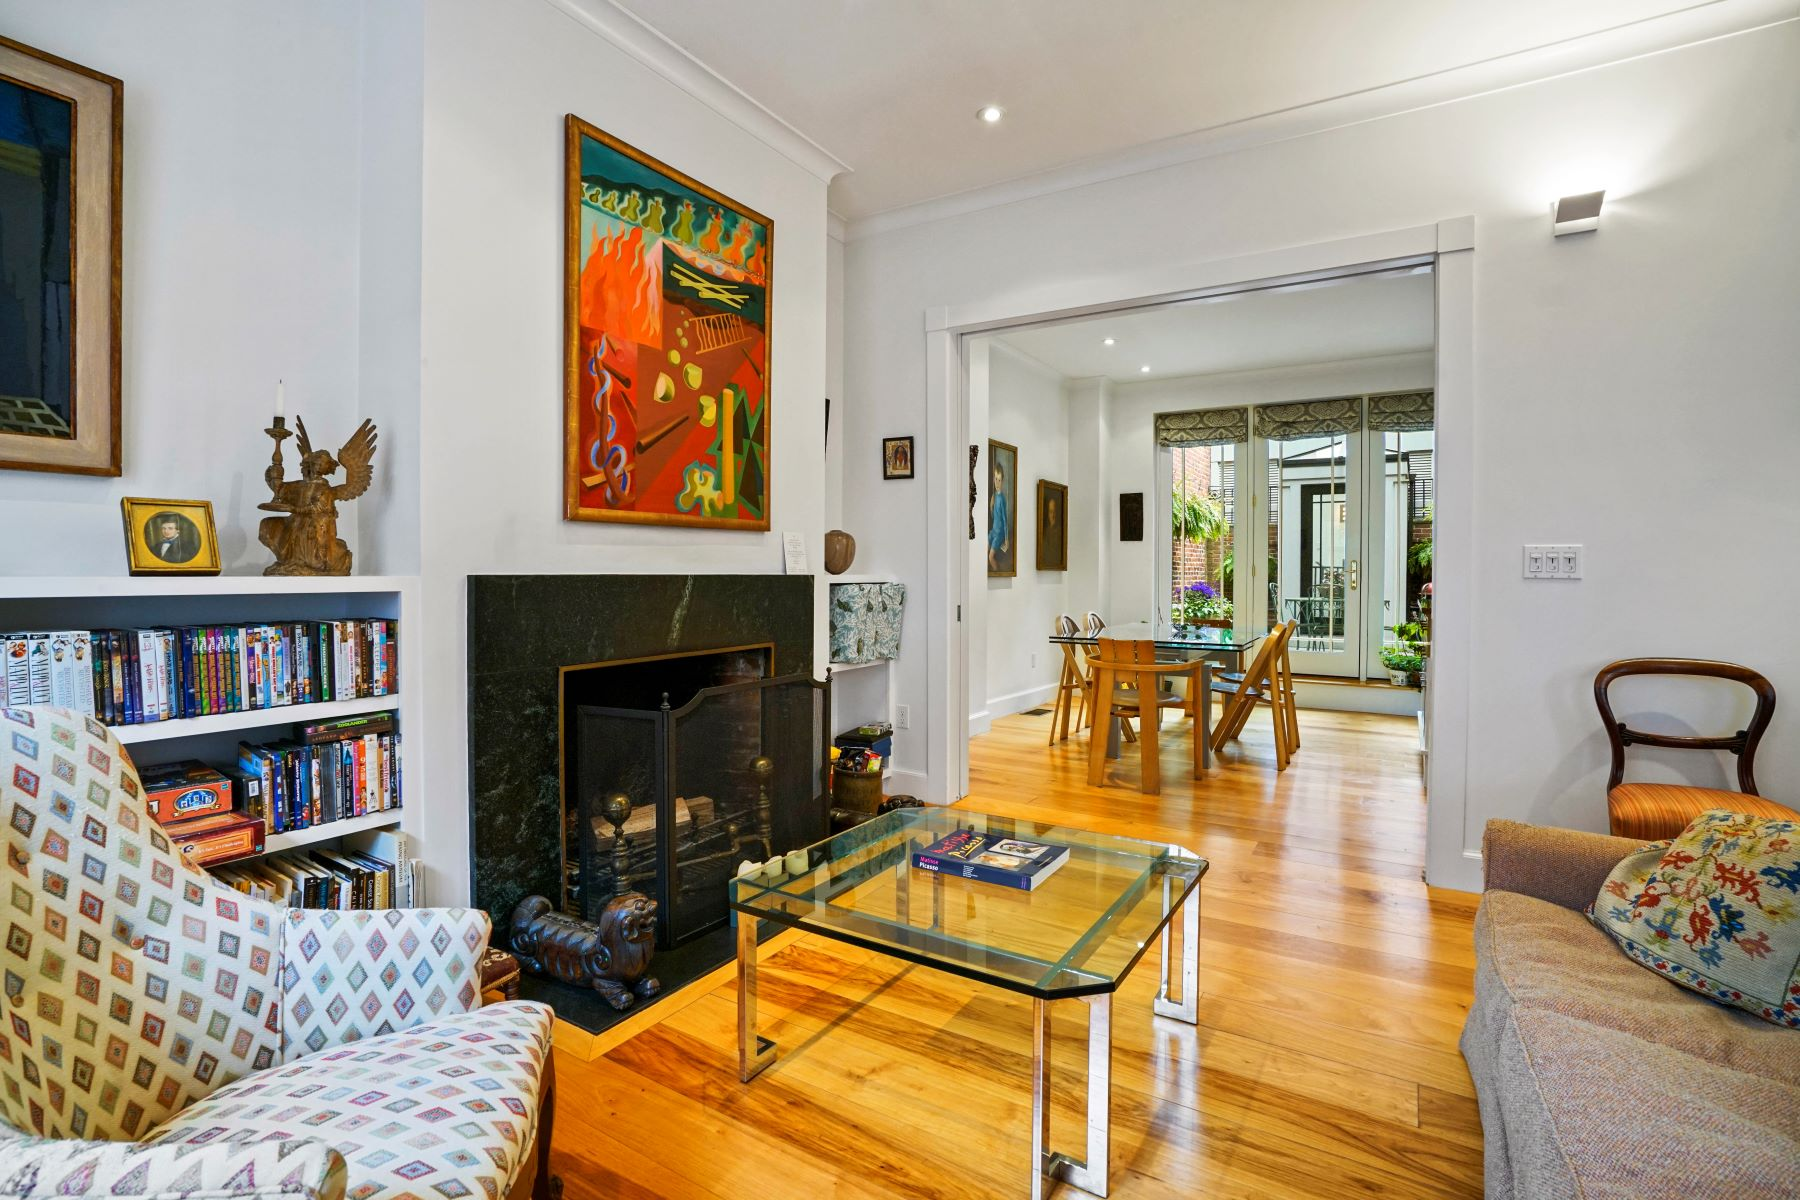 Single Family Home for Active at 33 Branch St Boston, Massachusetts 02108 United States